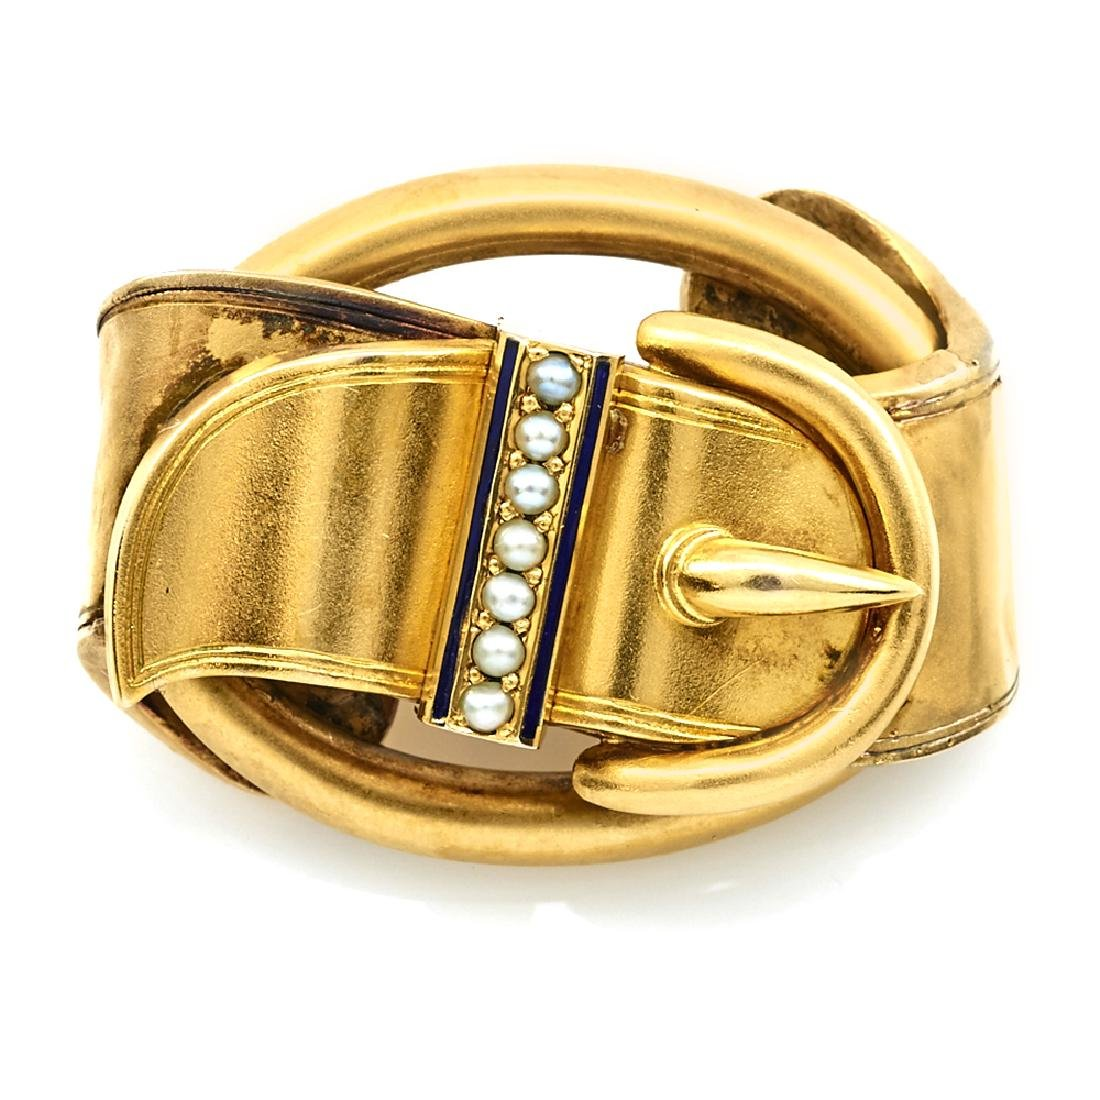 18k Yellow gold Victorian buckle brooch